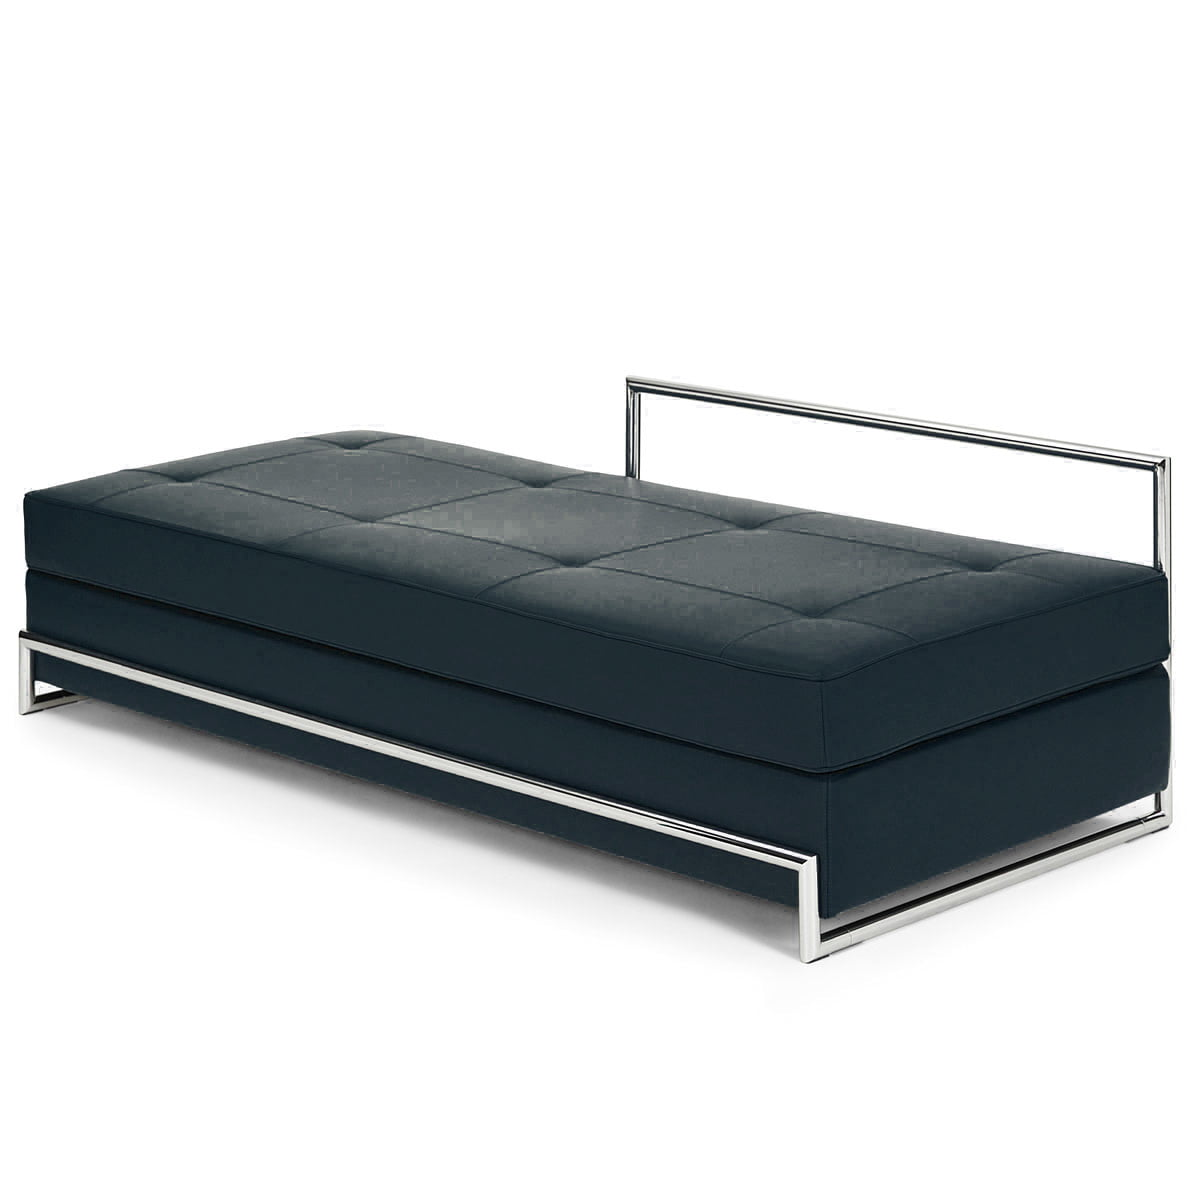 day bed classicon shop. Black Bedroom Furniture Sets. Home Design Ideas